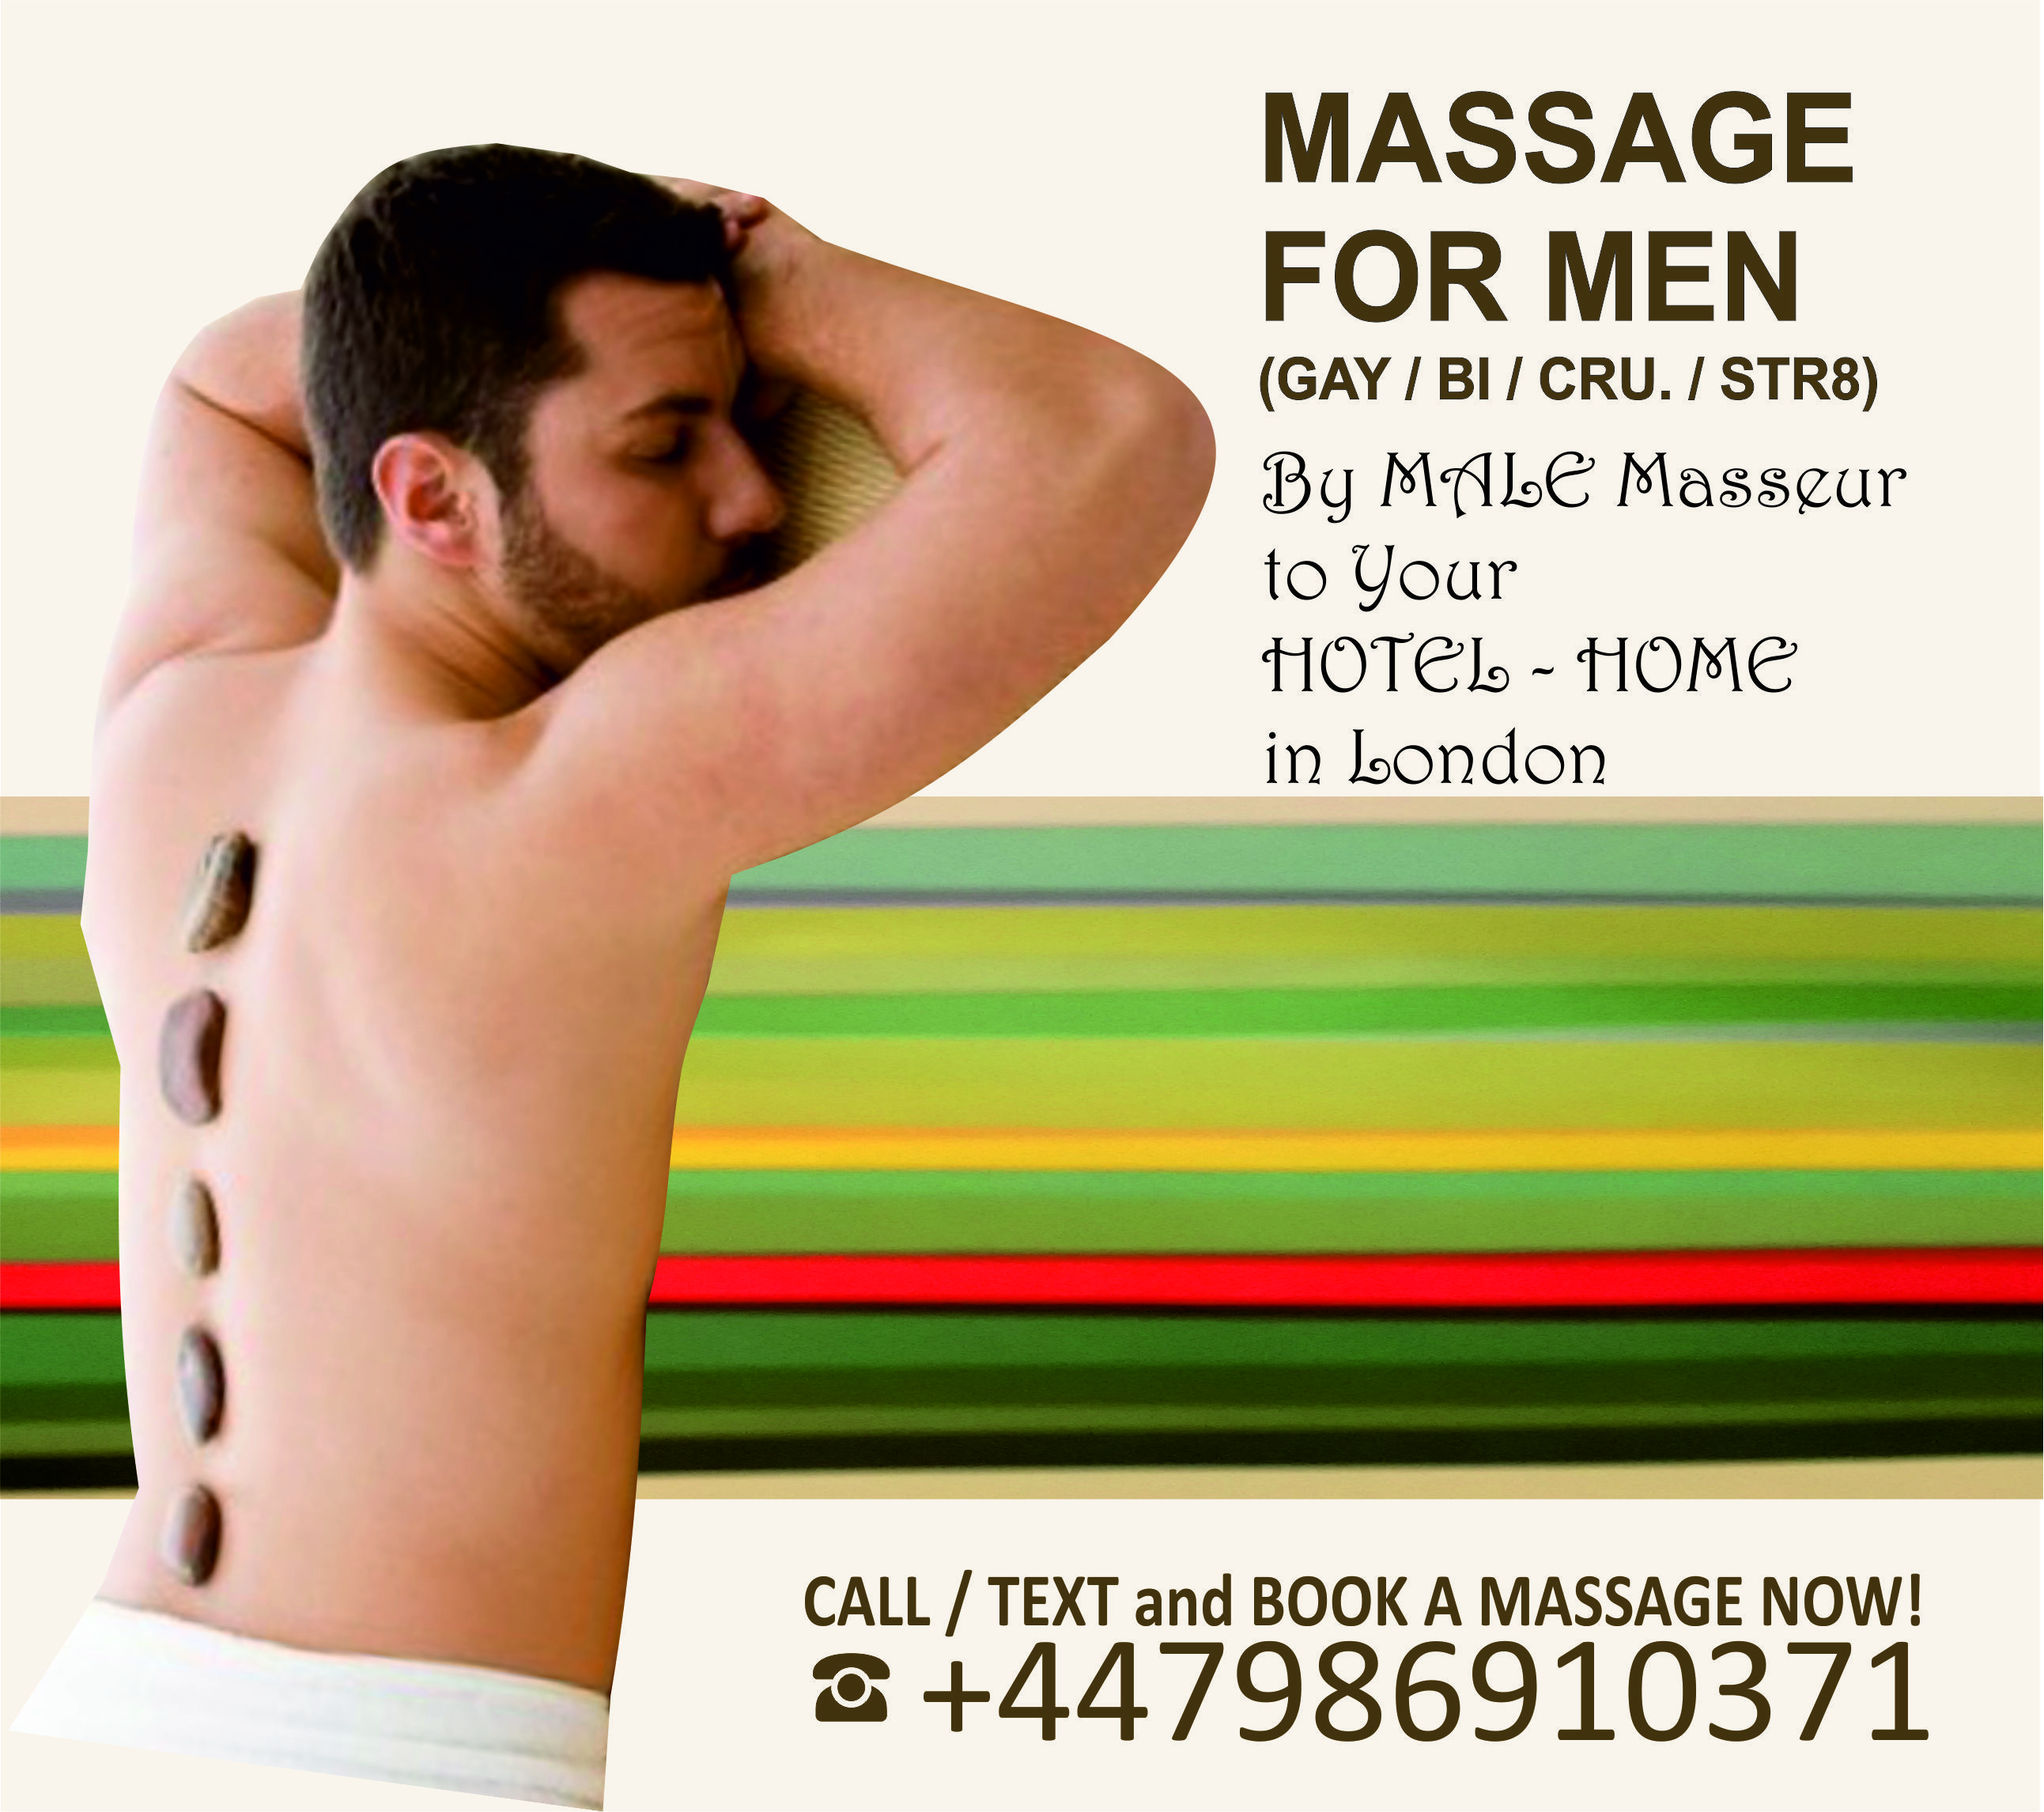 Male massage groups